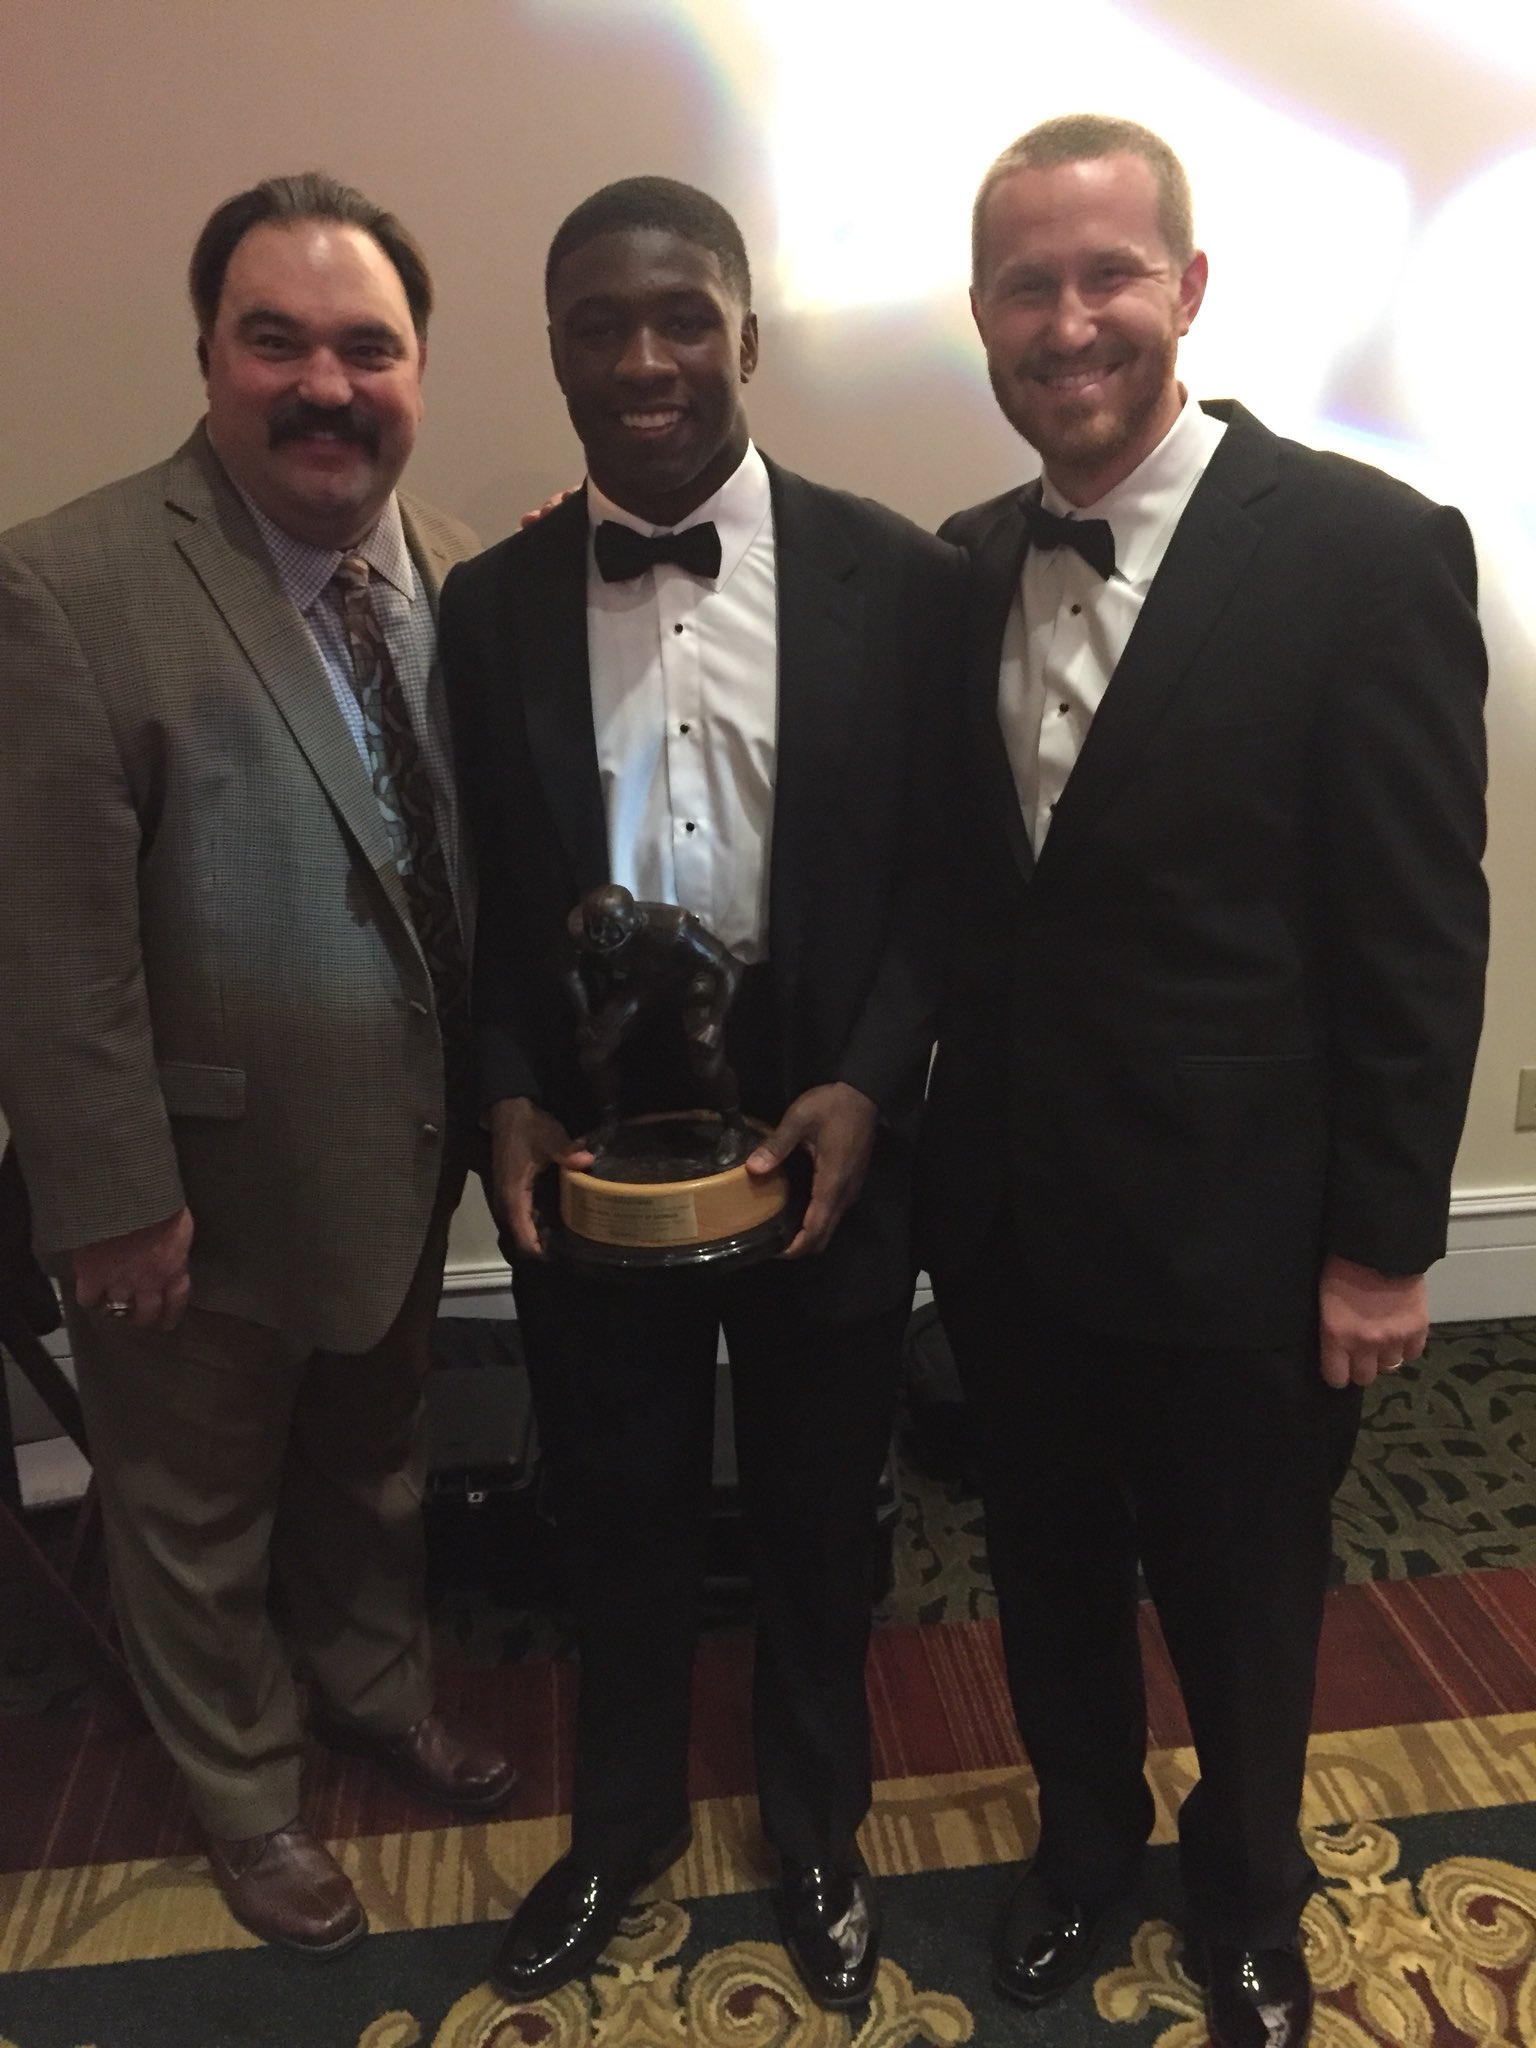 Georgia linebacker's coach Glenn Schumann (right) poses with Bulldog junior ILB Roquan Smith (middle) after being named and presented the 2017 Butkus  Award at the annual UGA football Gala in Athens. (Photo from Glenn Schumann / Twitter)